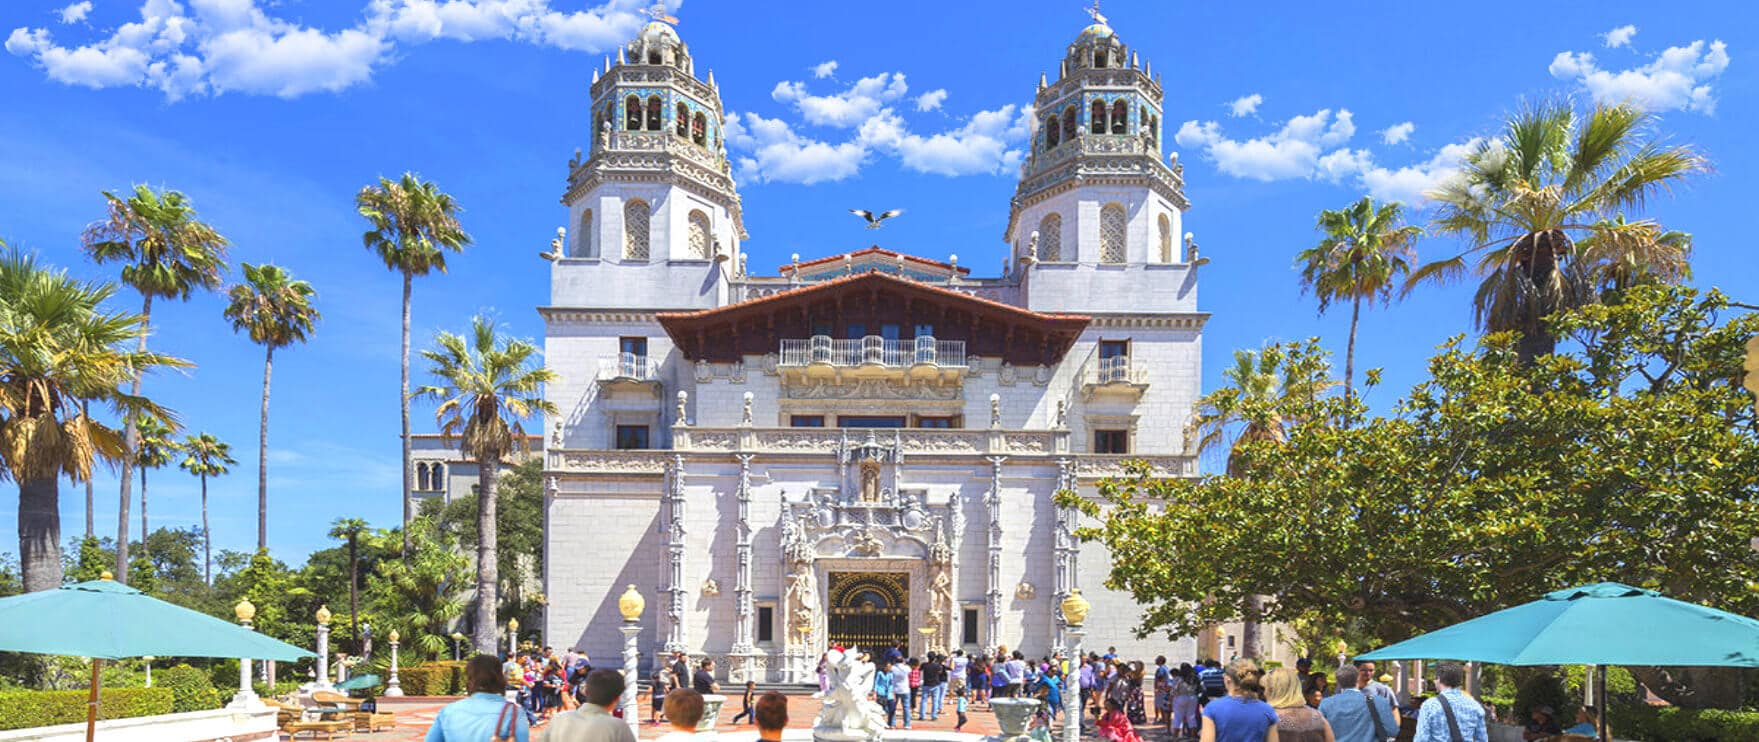 Visit-La-Casa-Grande-of-Hearst-Castle-in-California(1)